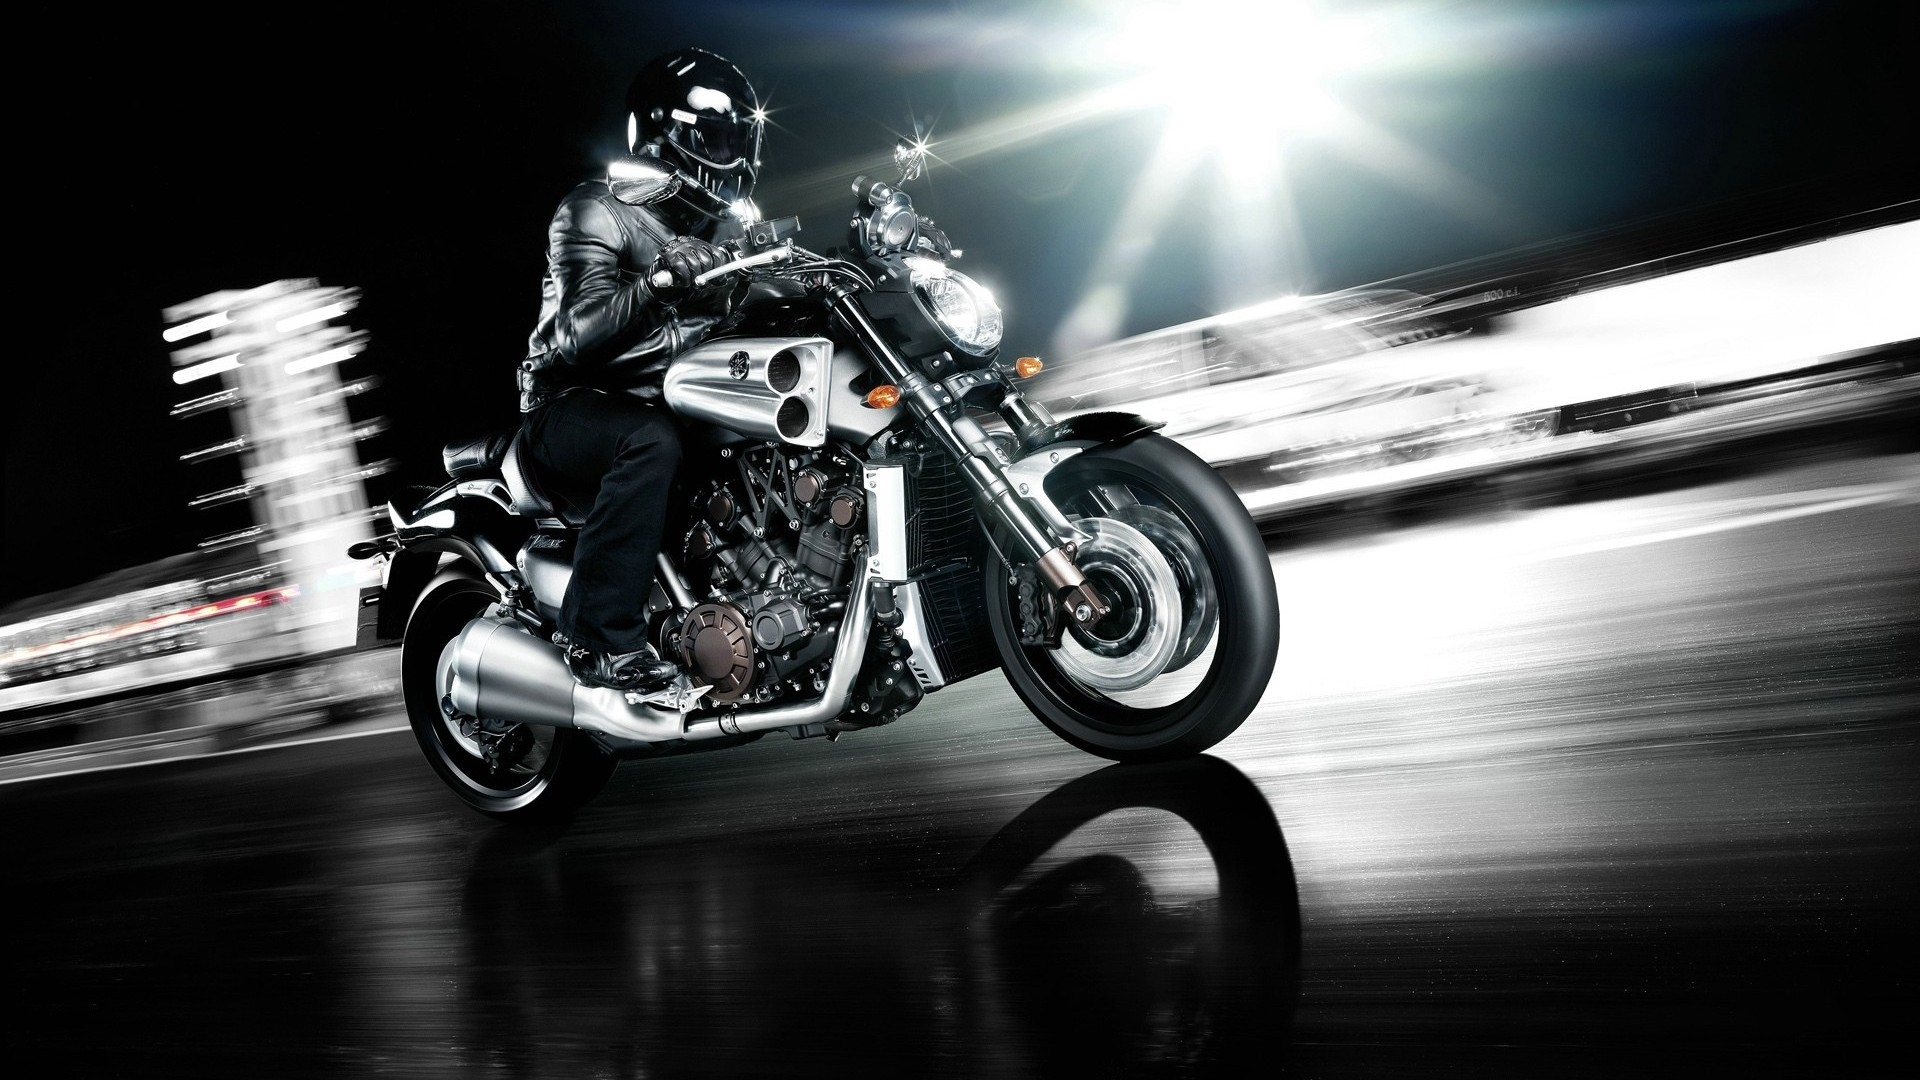 yamaha v max download wallpaper